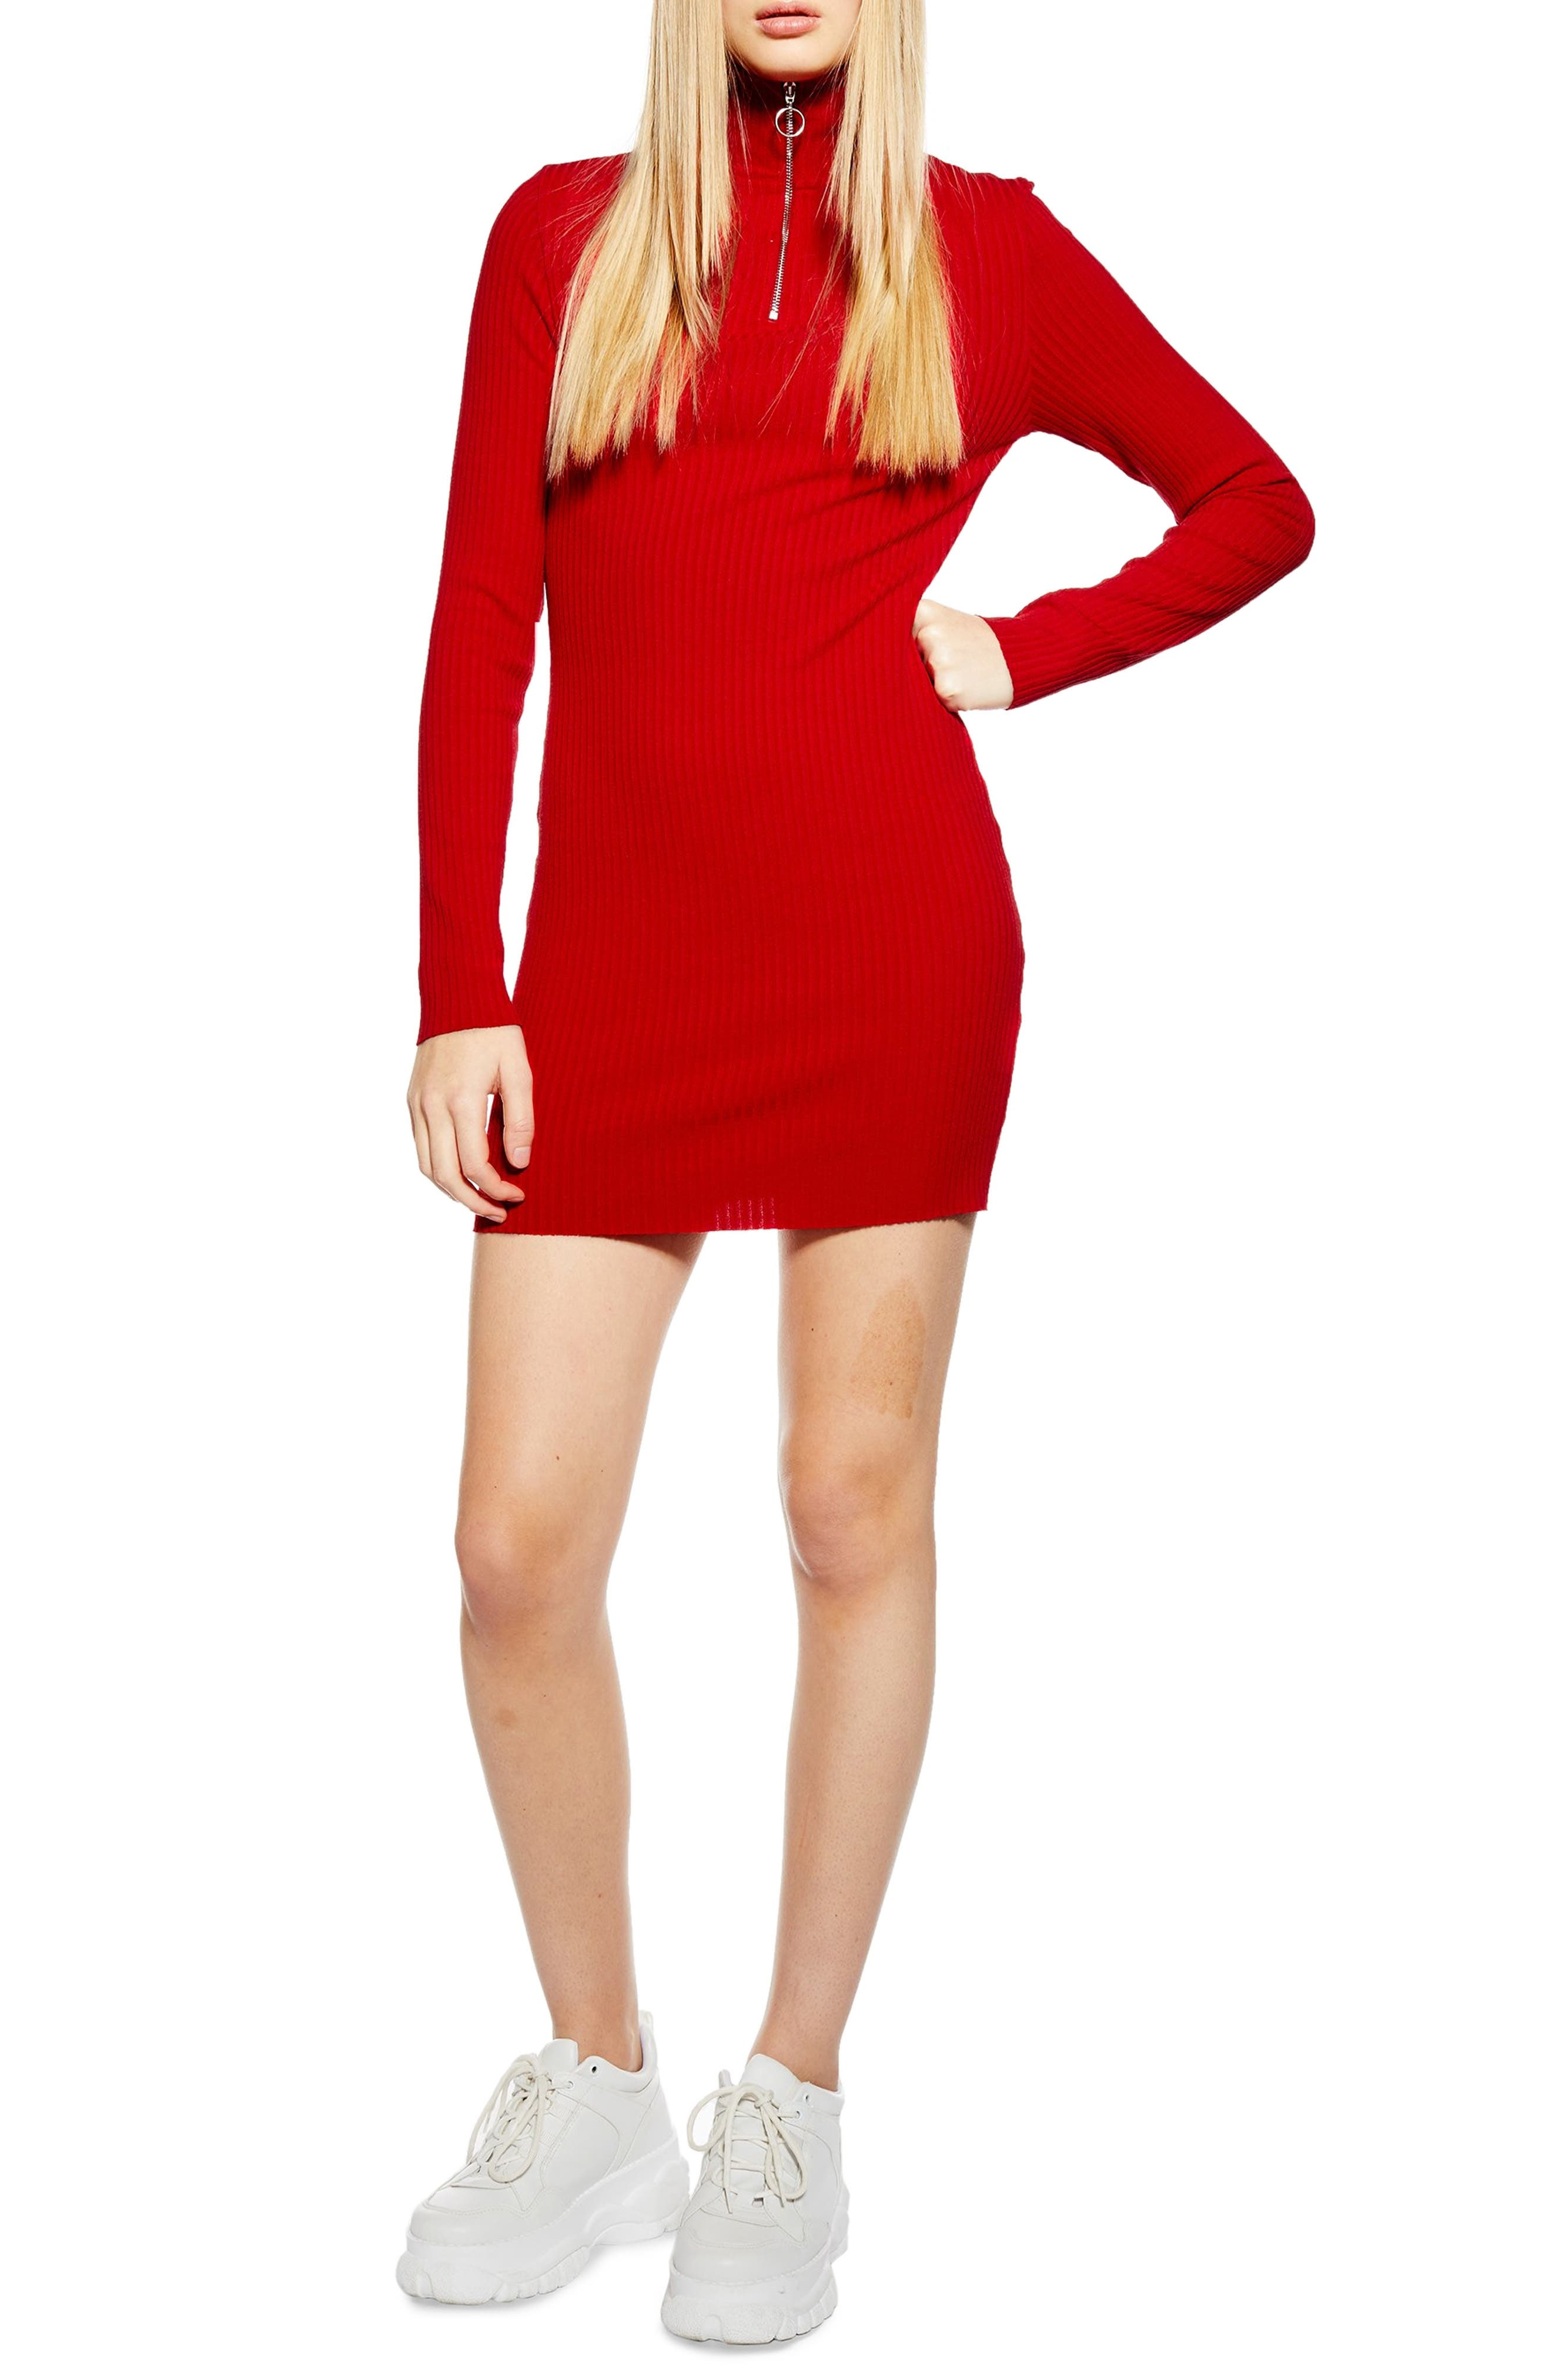 Topshop Ribbed Zip Jersey Dress, US (fits like 2-4) - Red